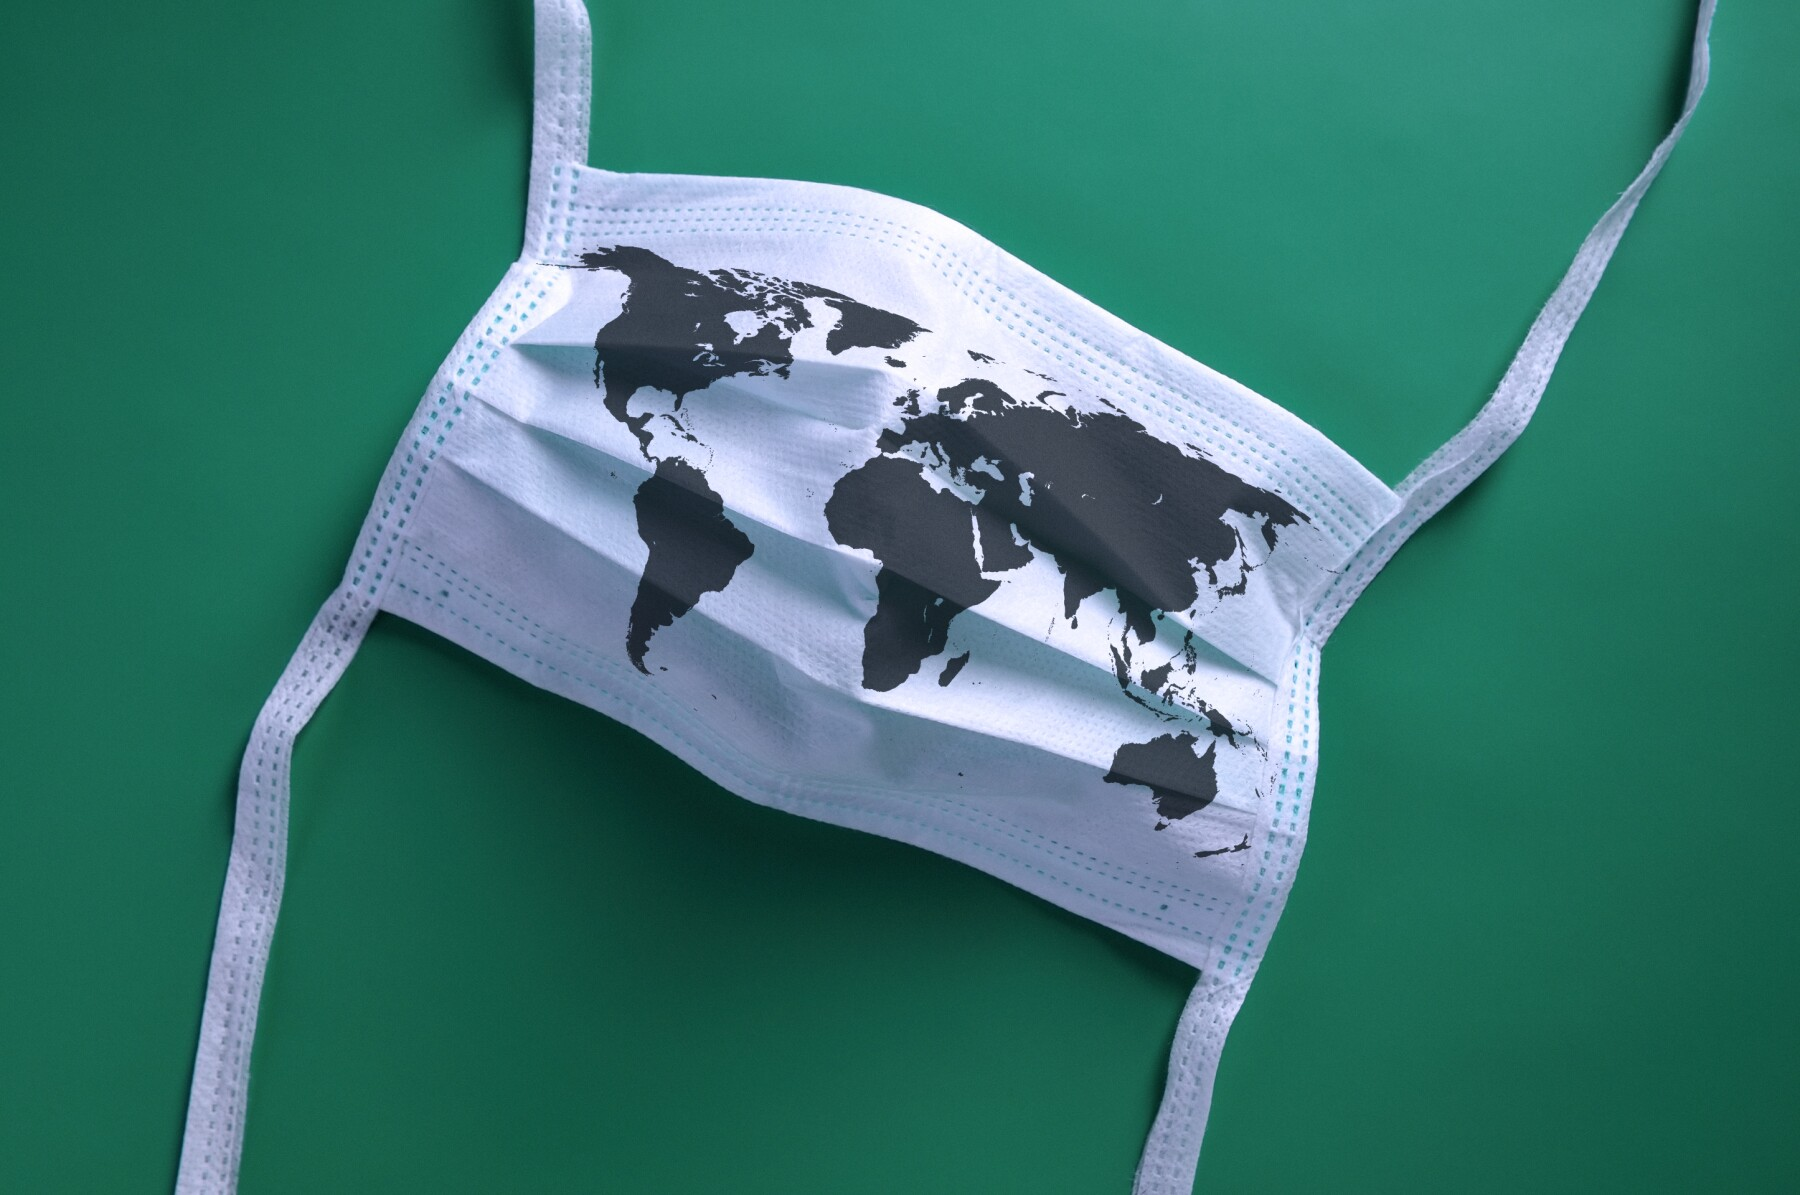 White face mask with a map of the world is lying on a green background